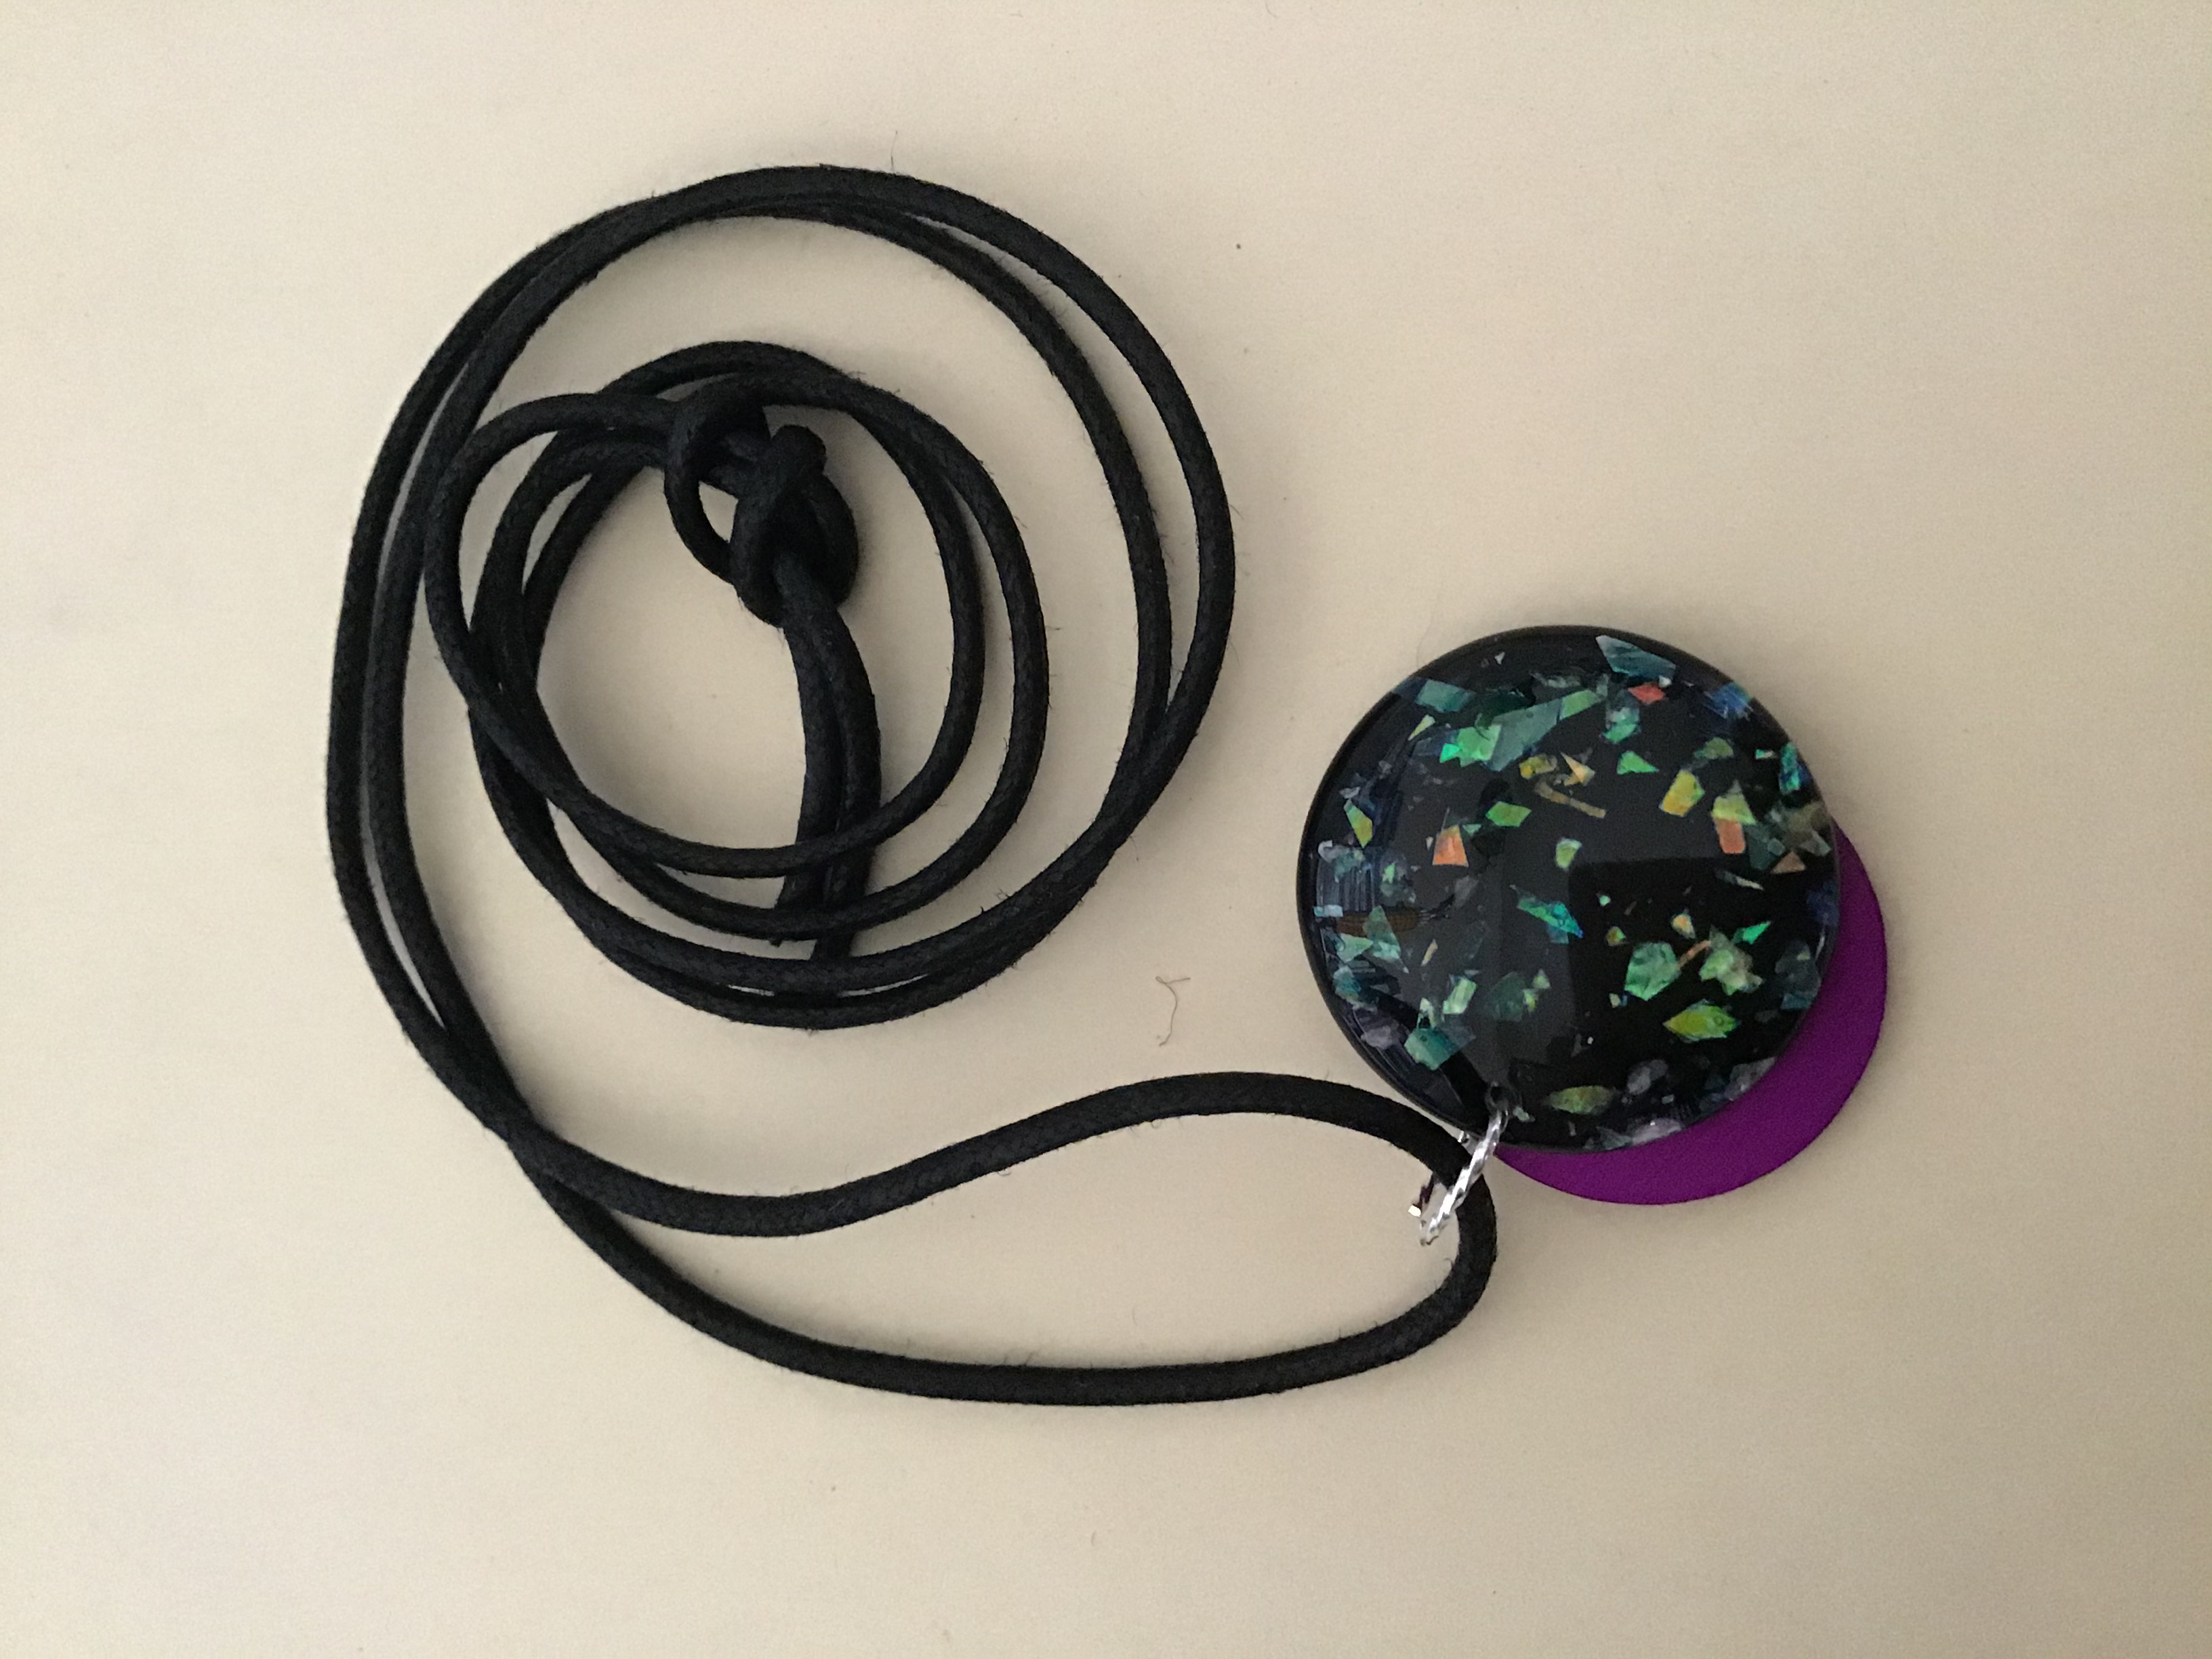 Starry Night Disk w/Tesla Energy Disk on Black Cord